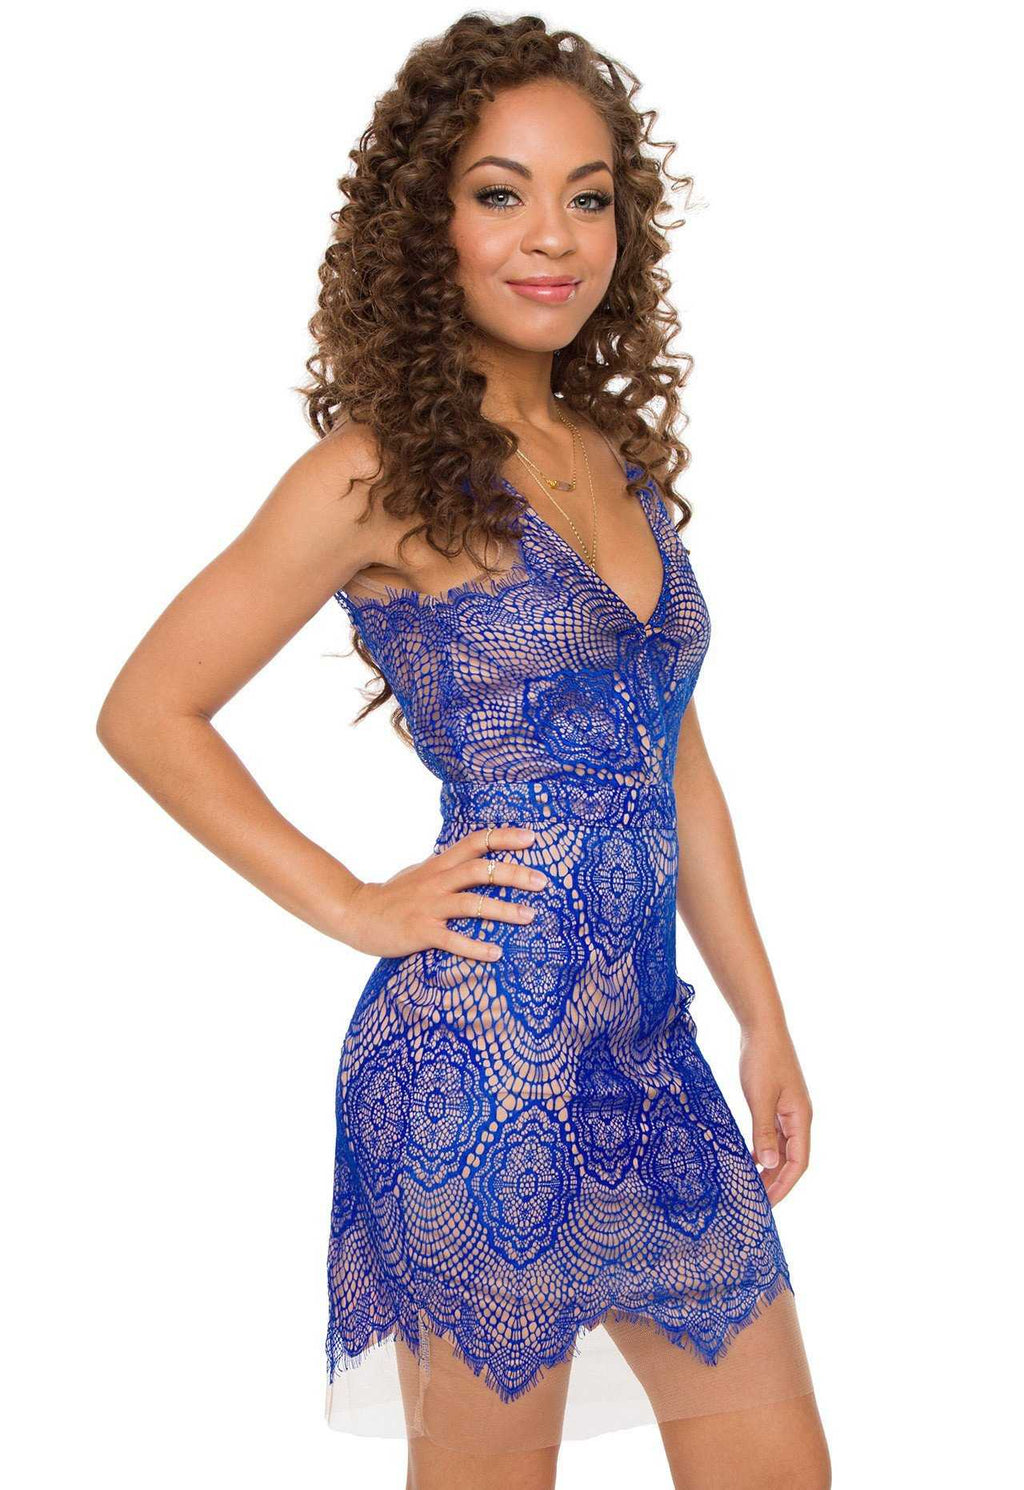 Dresses - Lilycove Dress - Blue